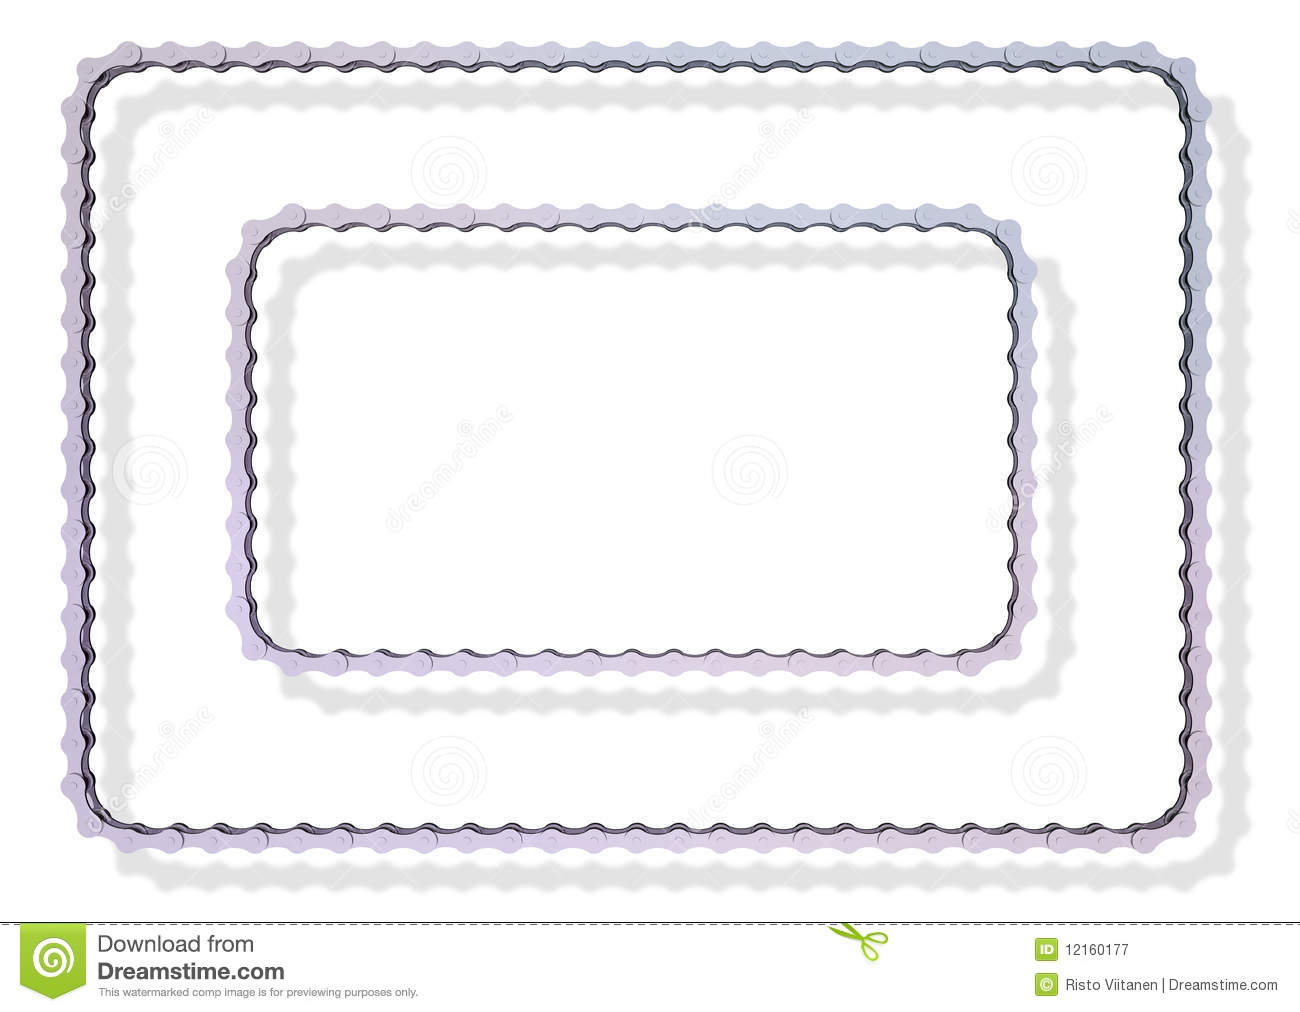 Bike chain frames stock illustration. Illustration of operation ...